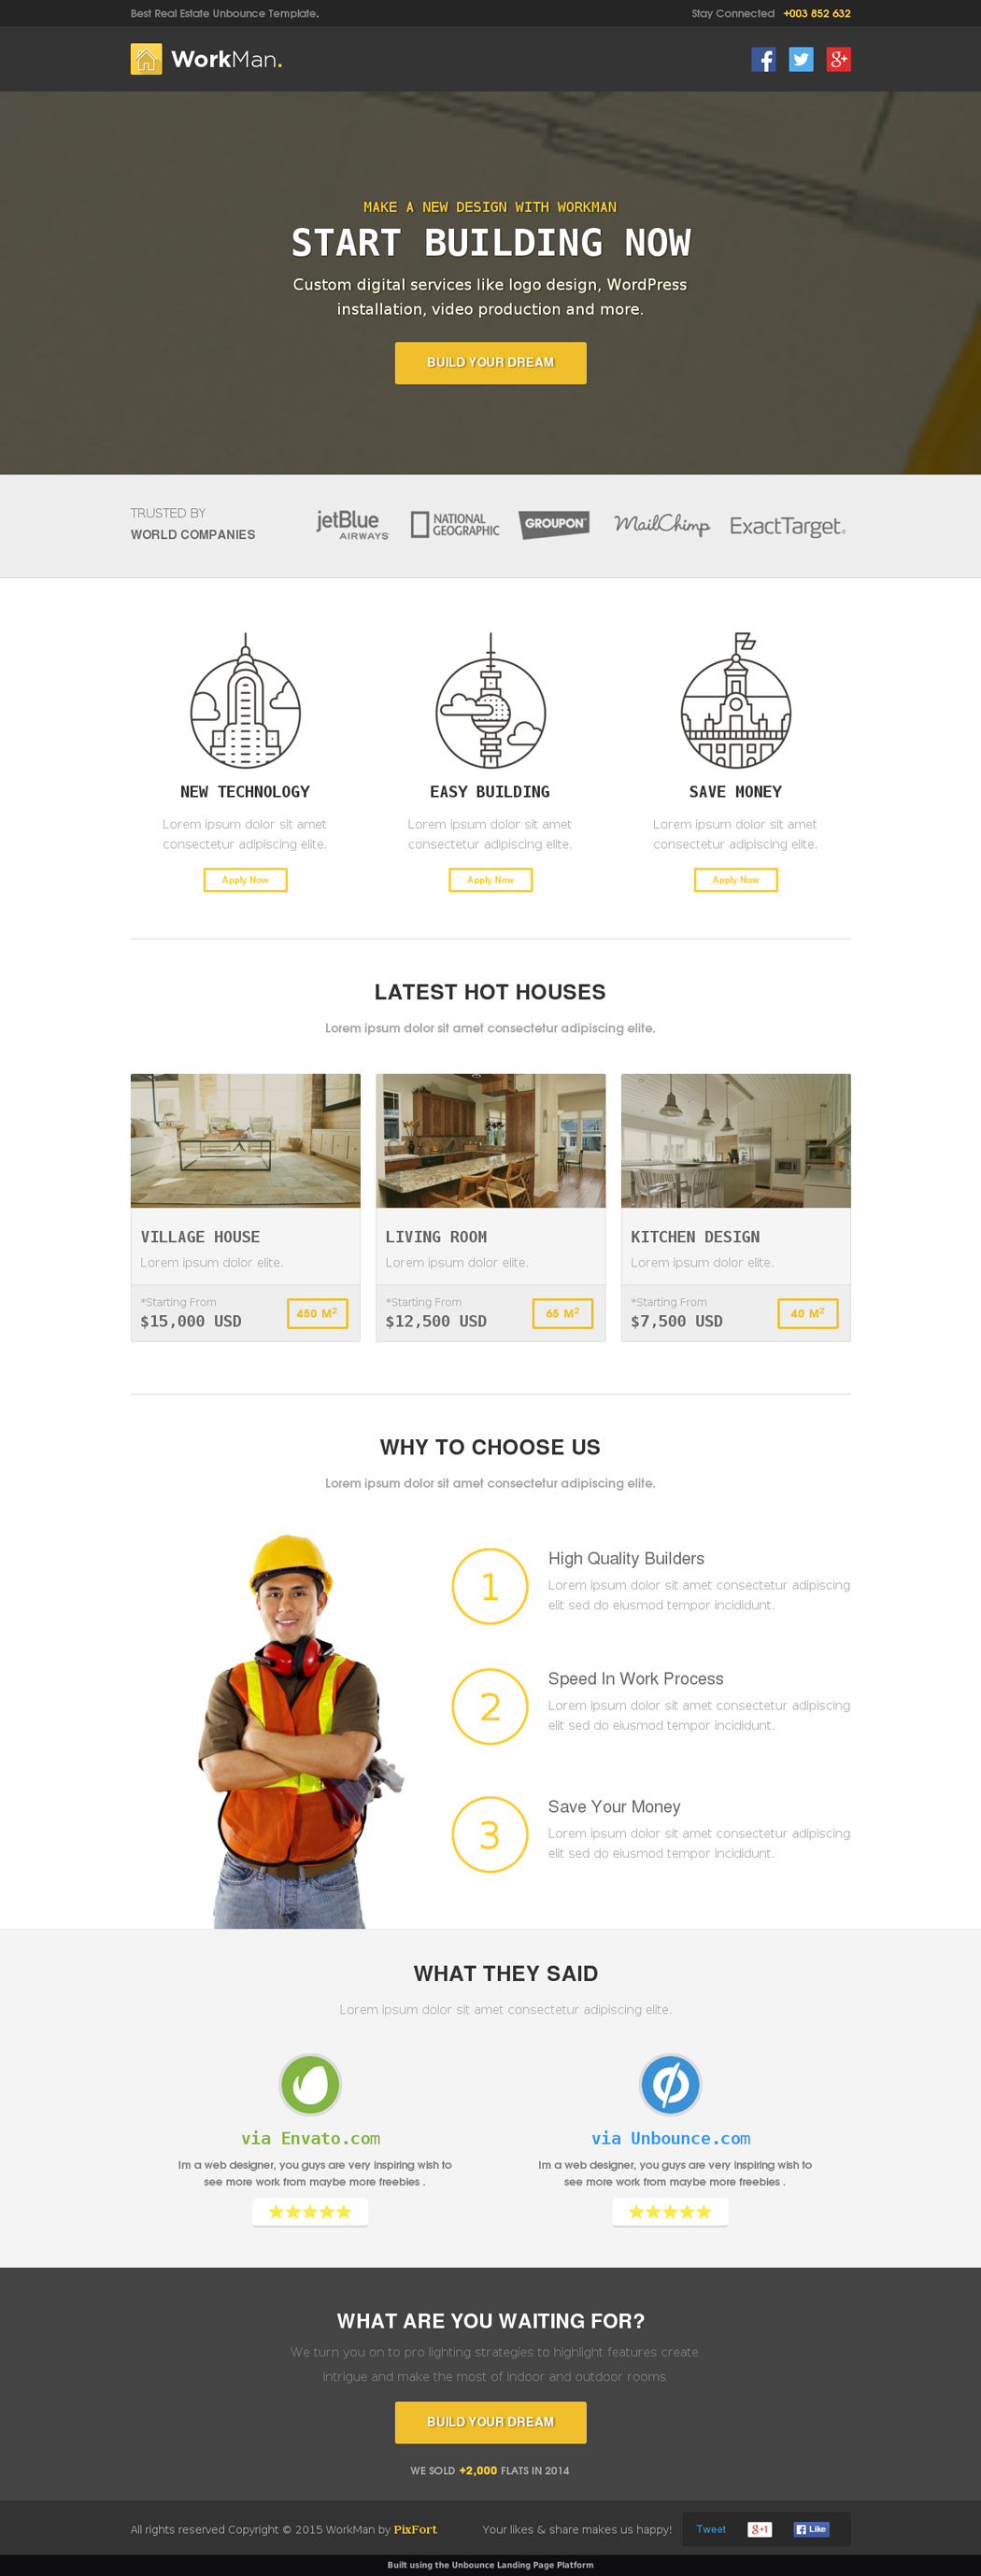 Real Estate Landing Page Templates For Your Appraisal - Buy landing page template